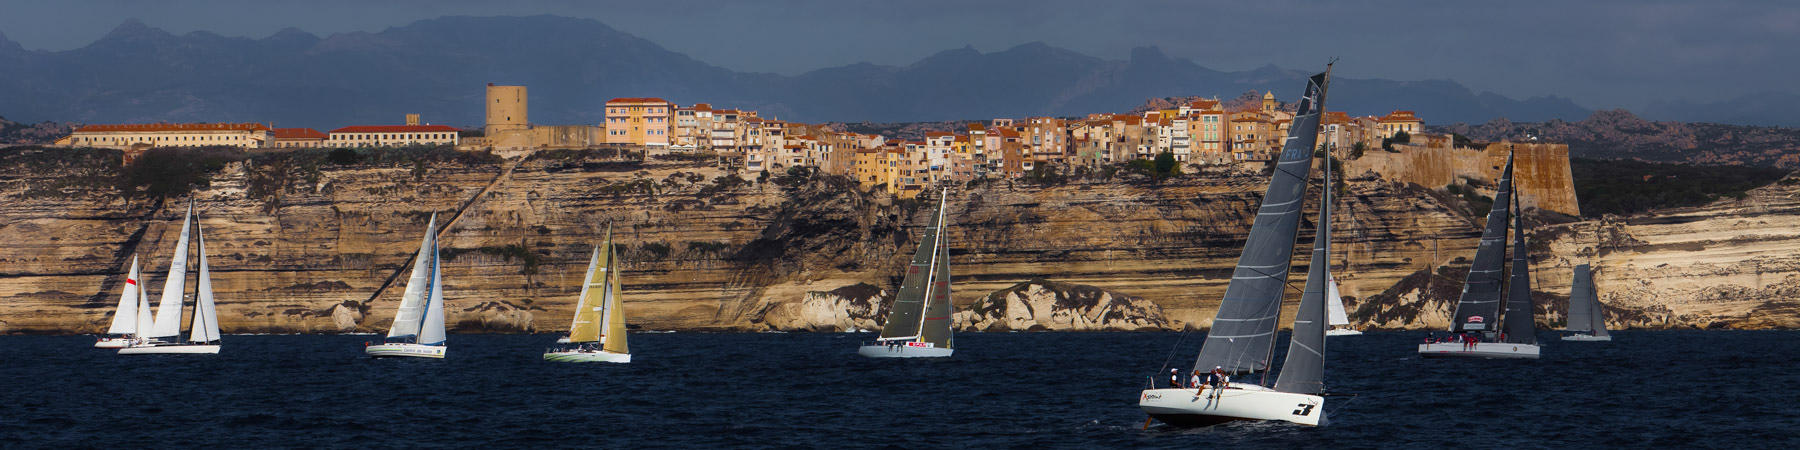 Sailing race around Corsica - Photo Pêcheur d'Images